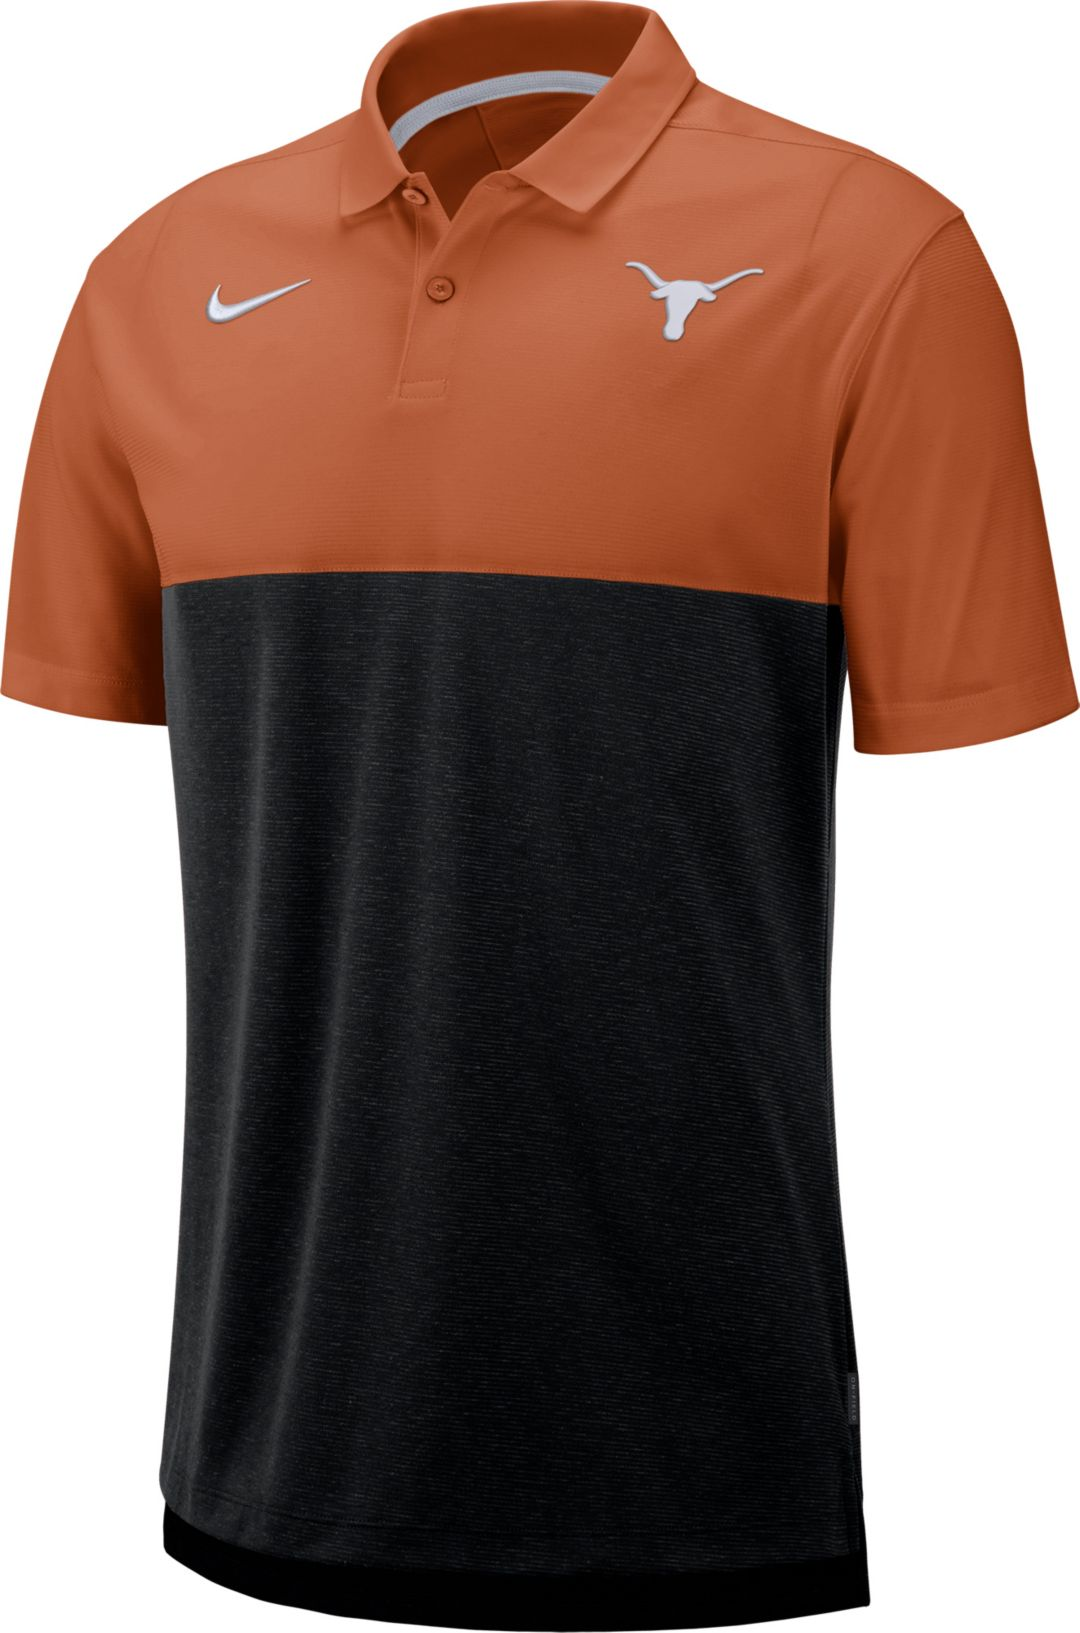 992d18e8 Nike Men's Texas Longhorns Burnt Orange/Black Dri-FIT Breathe Football  Sideline Polo